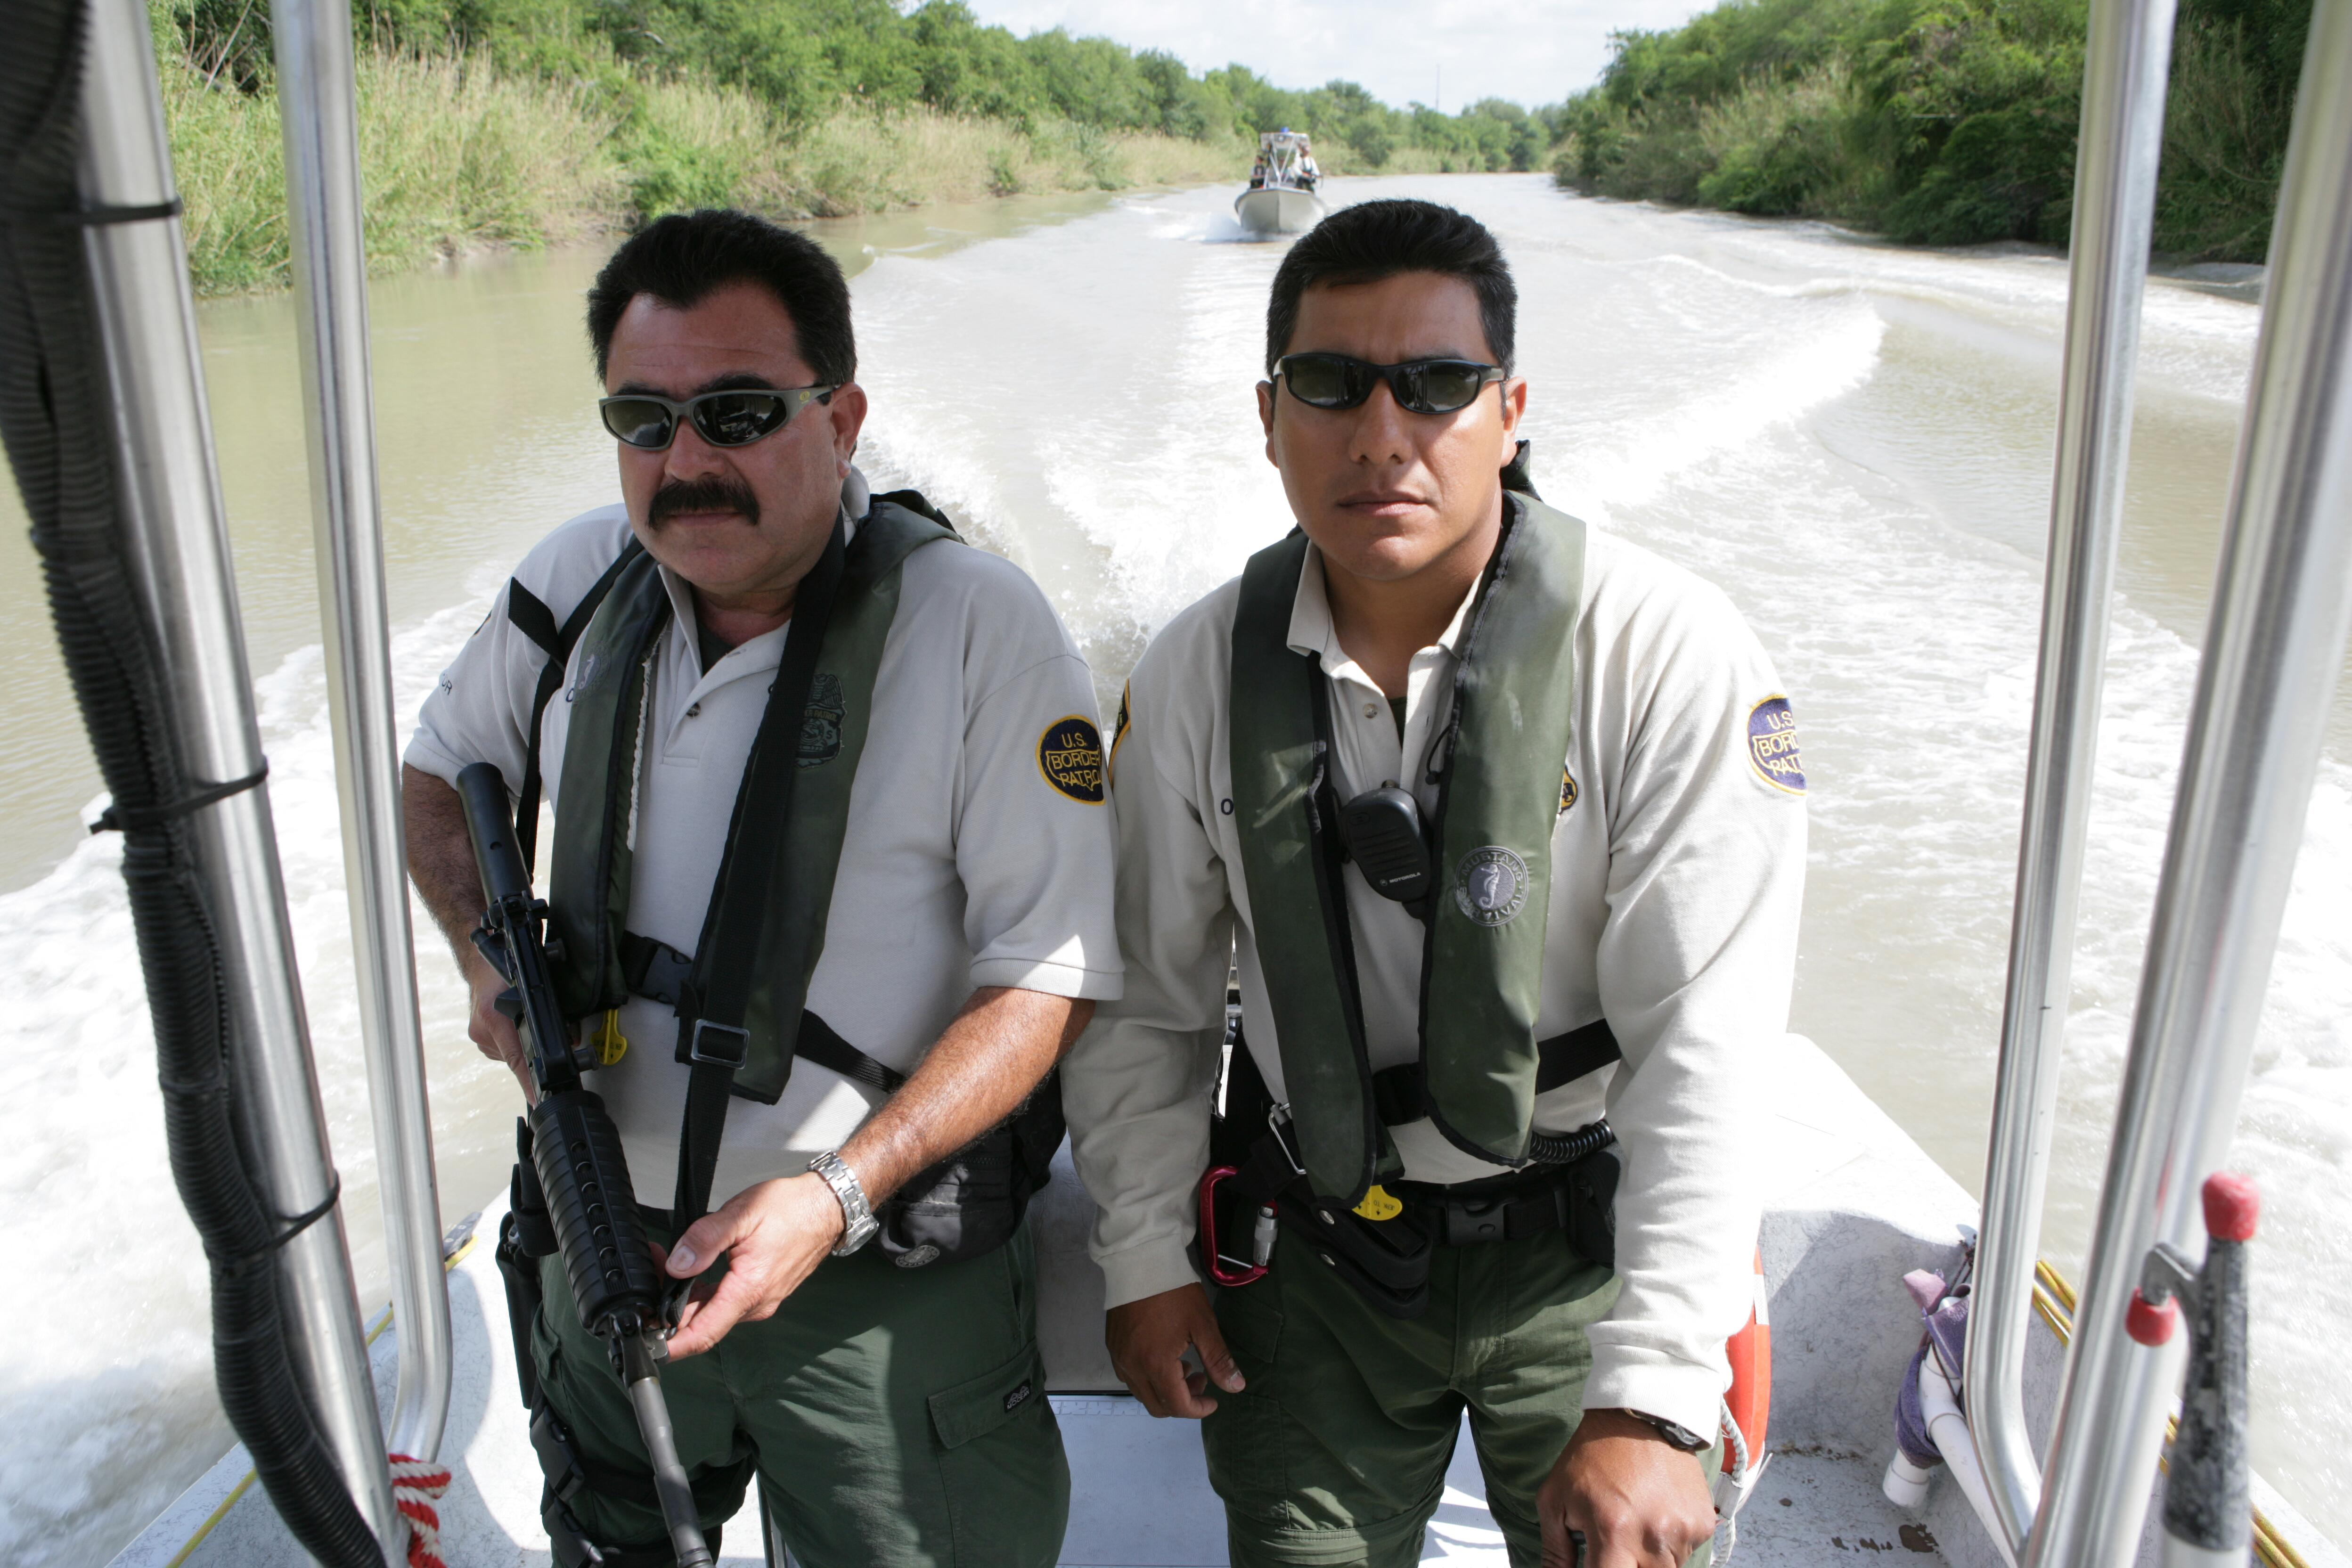 U.S. Border Patrol Marine Unit patrols the southern most portion of the Rio Grande river in Texas.